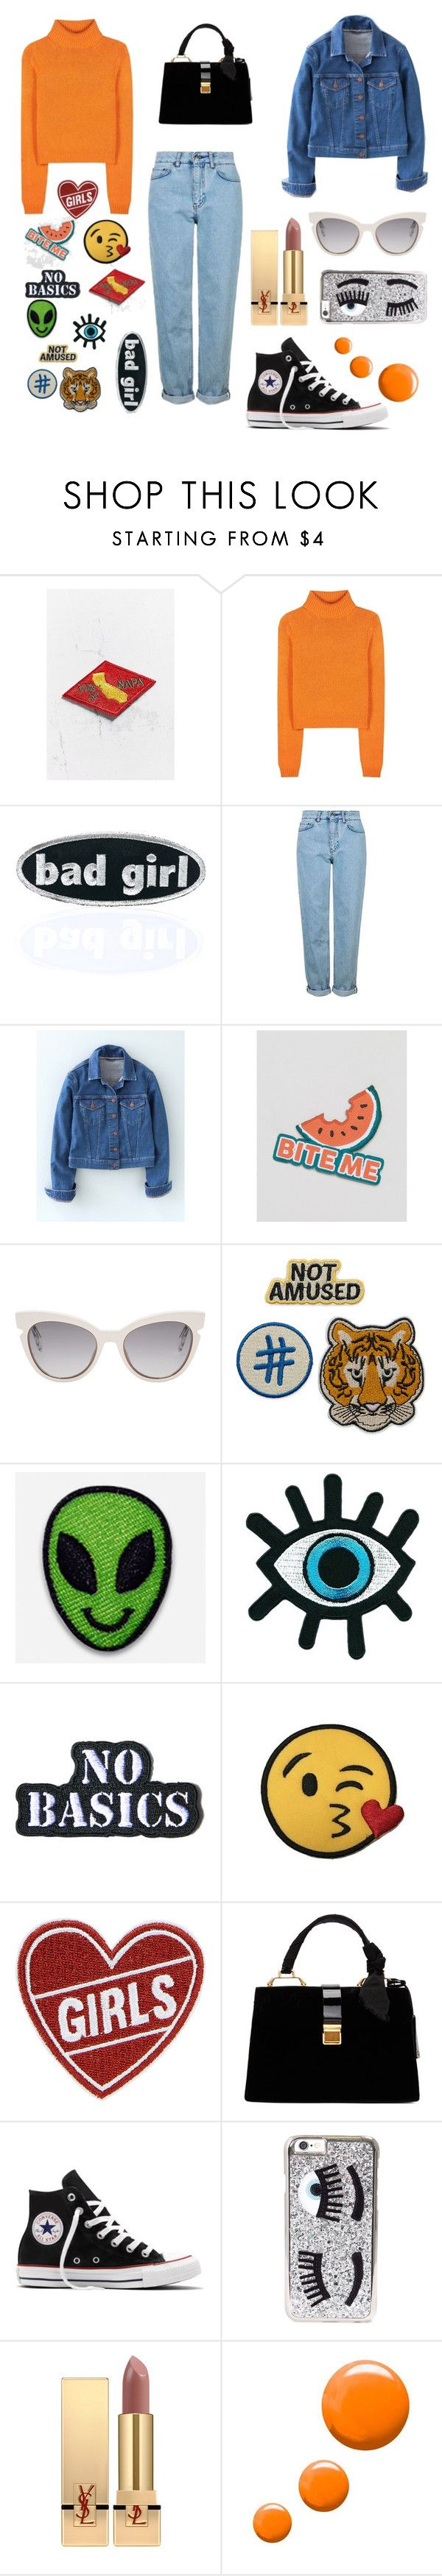 """""""No Basics"""" by nineties-wallflower ❤ liked on Polyvore featuring Urban Outfitters, Acne Studios, C&D Visionary, Topshop, Boden, Ohh Deer, Fendi, Hipstapatch, Hollywood Mirror and Melie Bianco"""